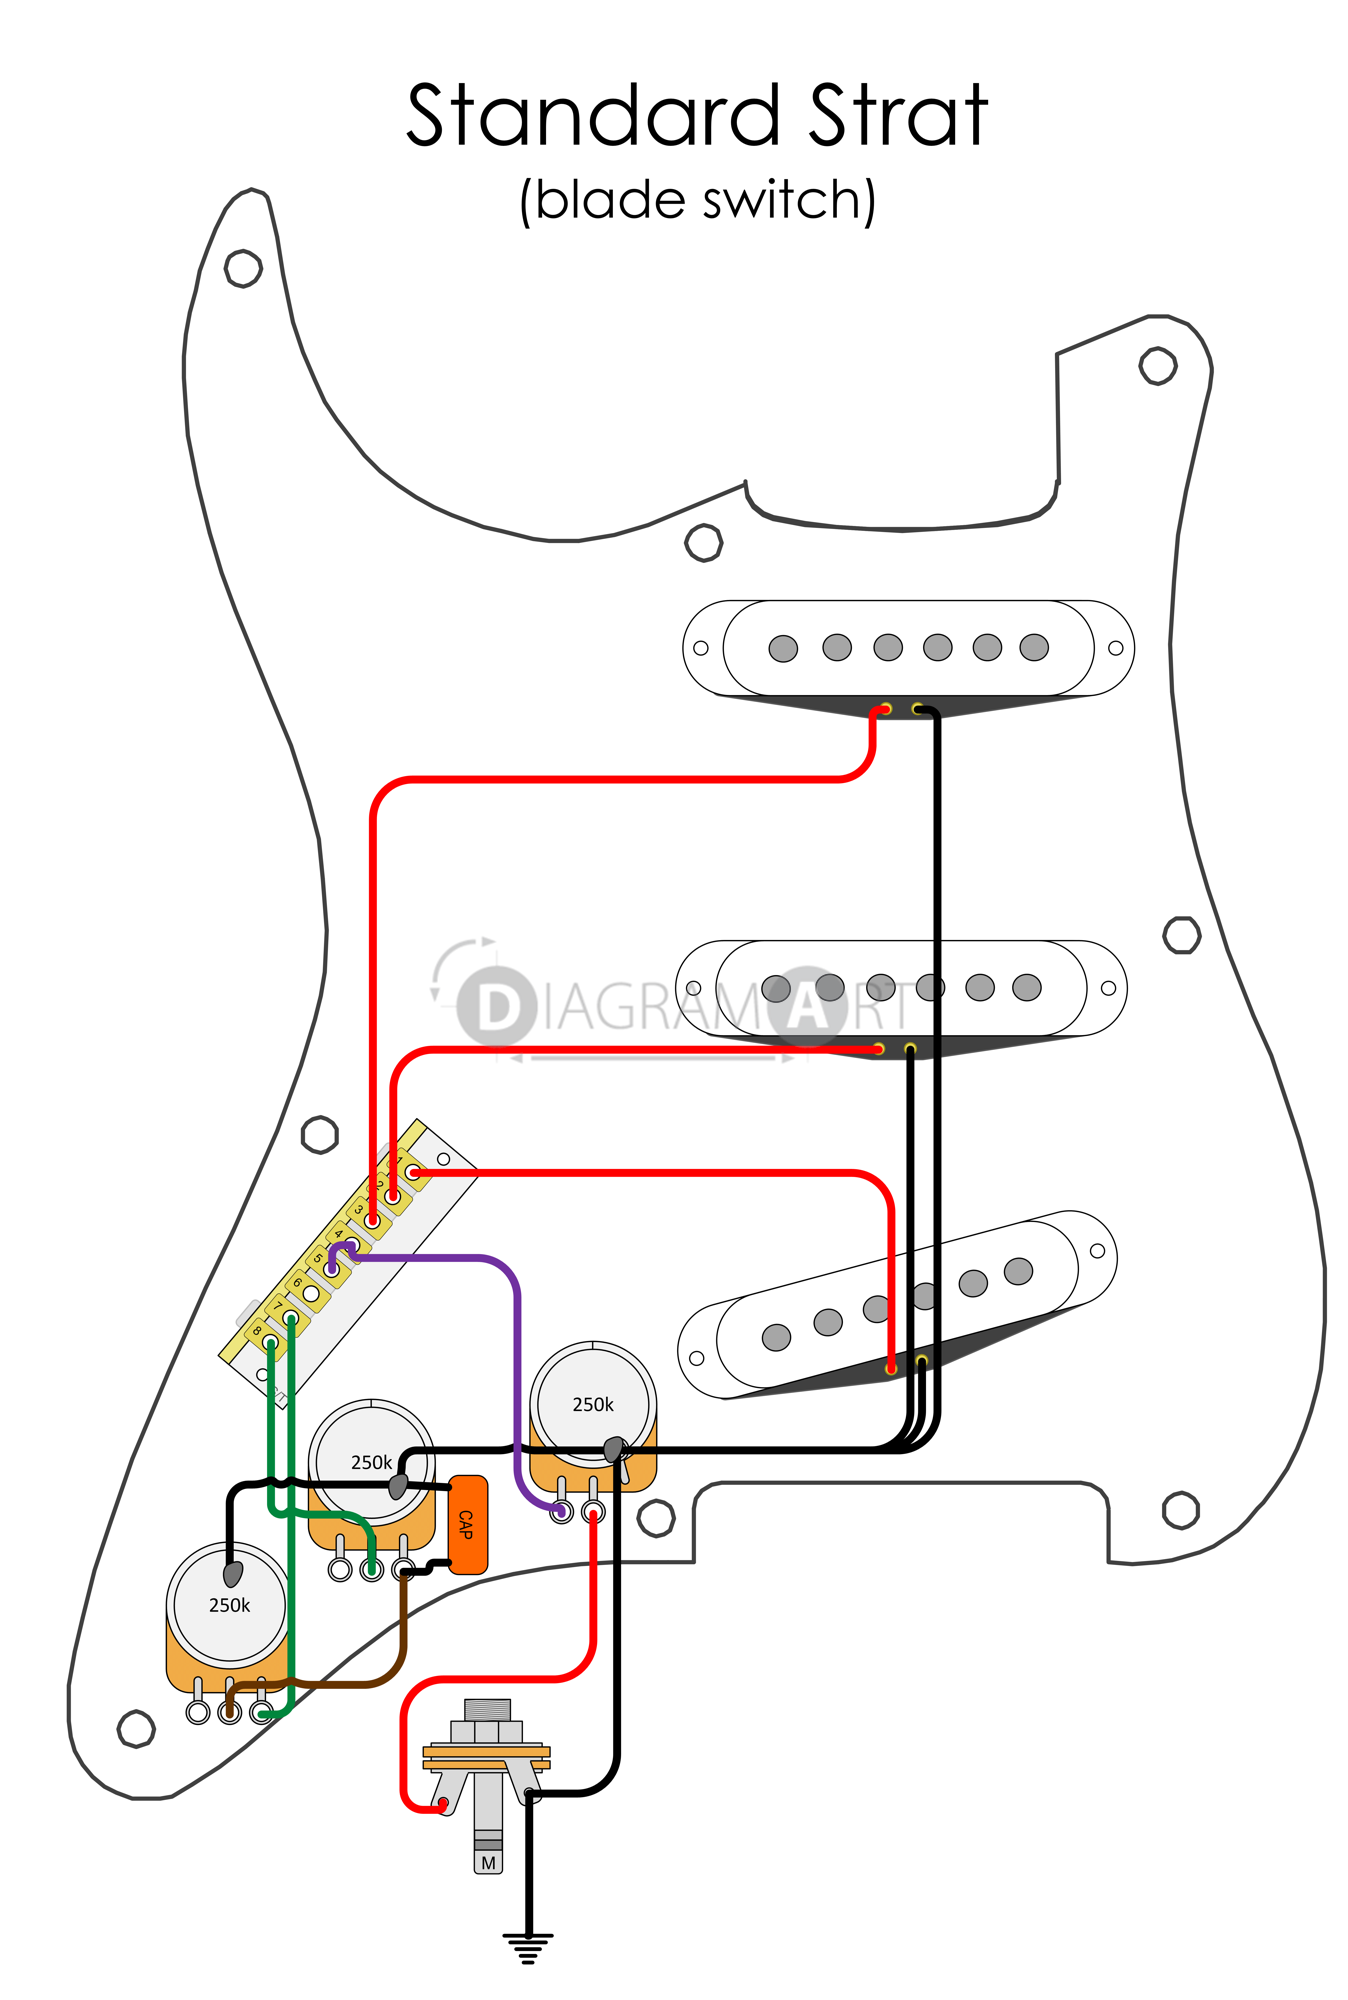 Electric Guitar Wiring: Standard Strat (Blade Switch ...